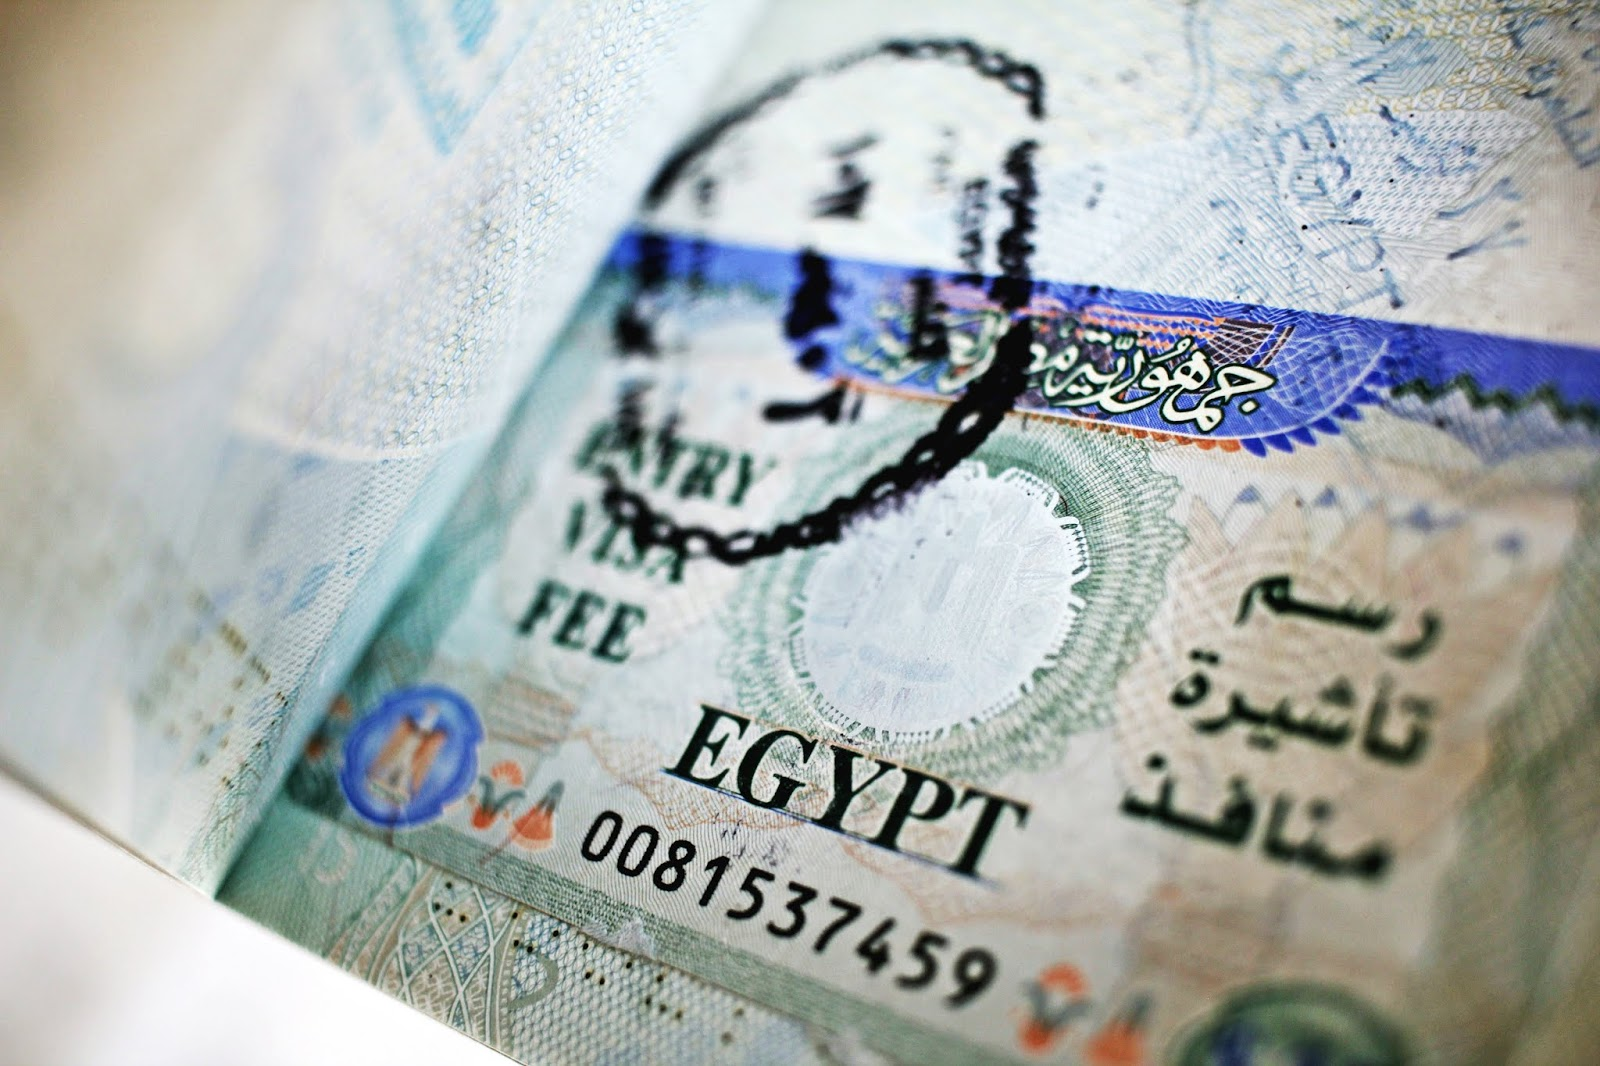 egypt visa passport